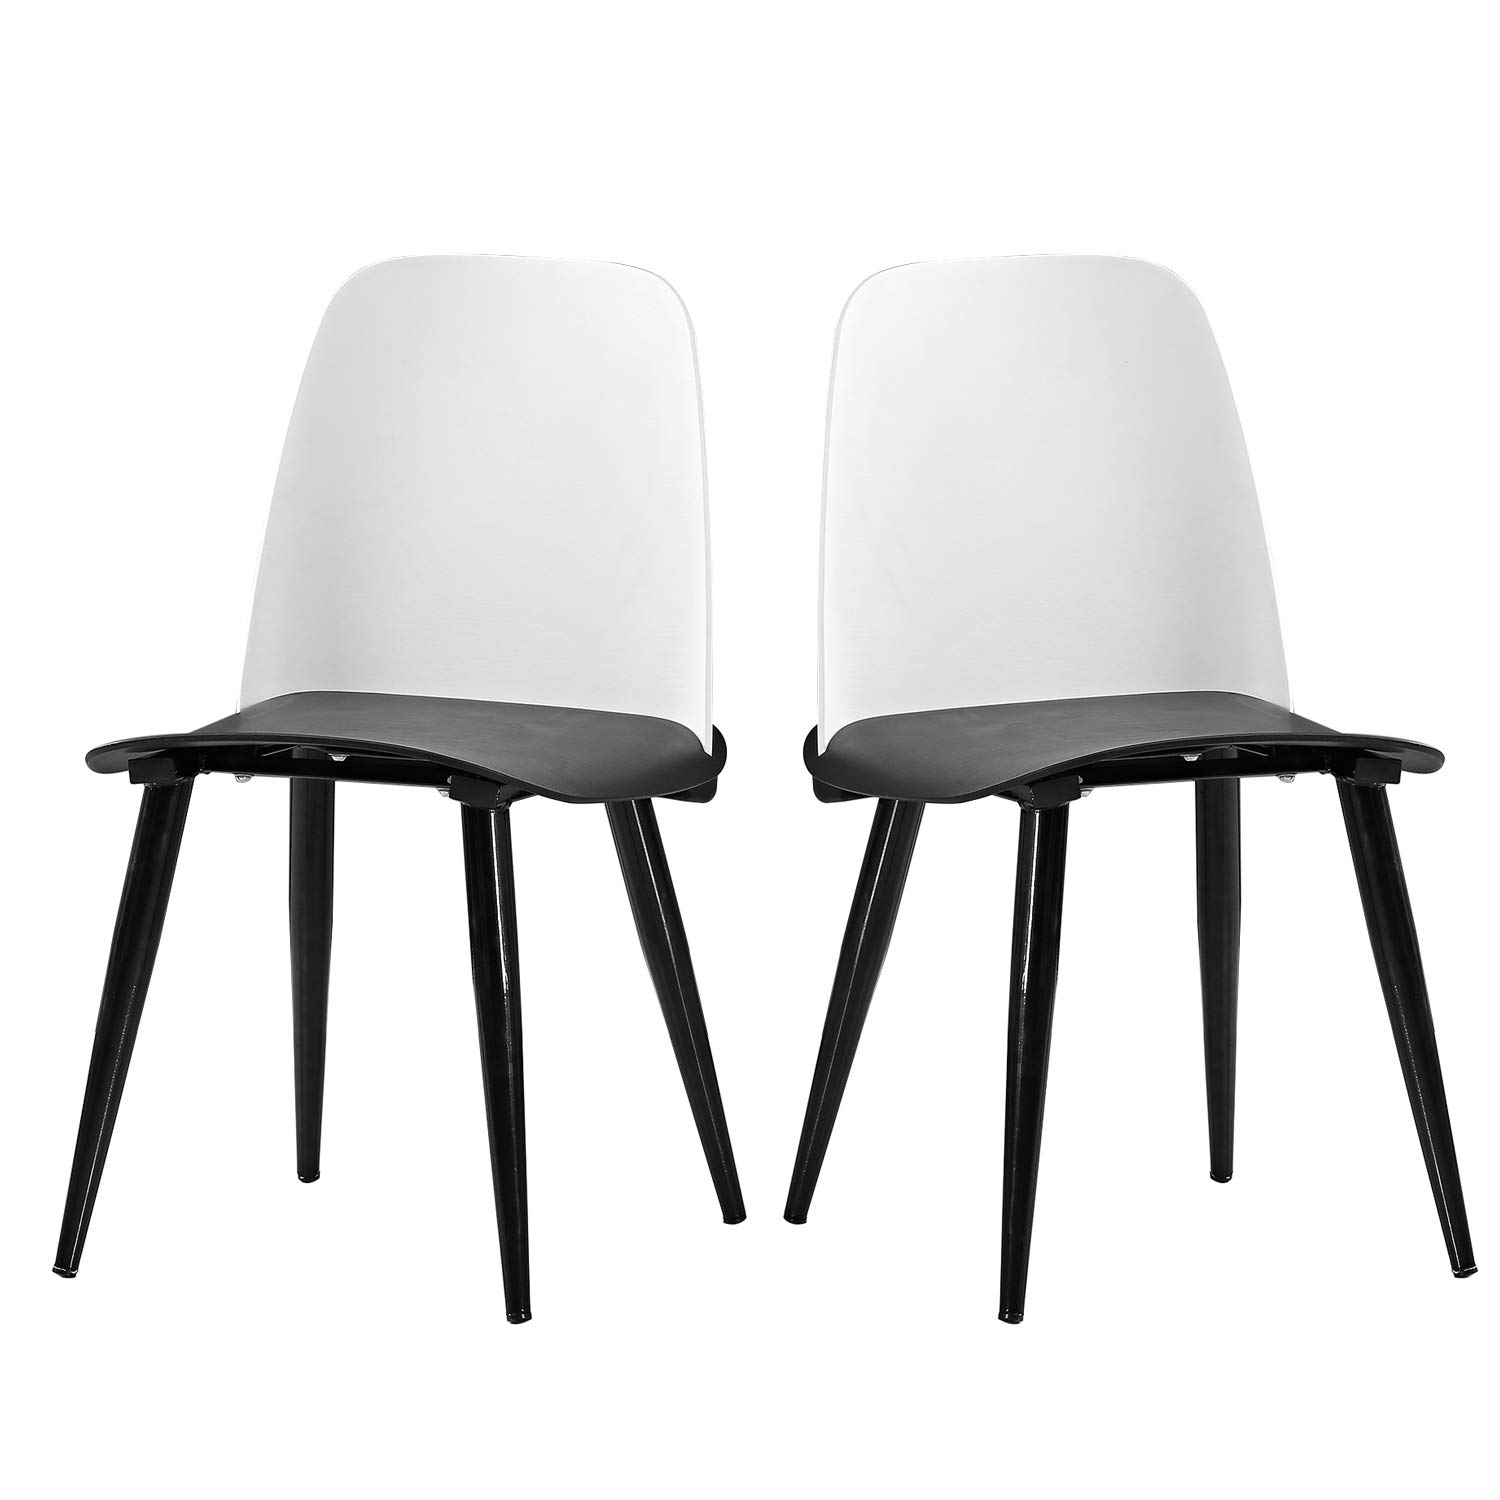 Soges Dining Room Chairs, Set of 2, Living Room Chairs, Kitchen Lounge Chairs, Heavy Duty Modern Home Chairs Set, Black and White BZ-1986-001-BW